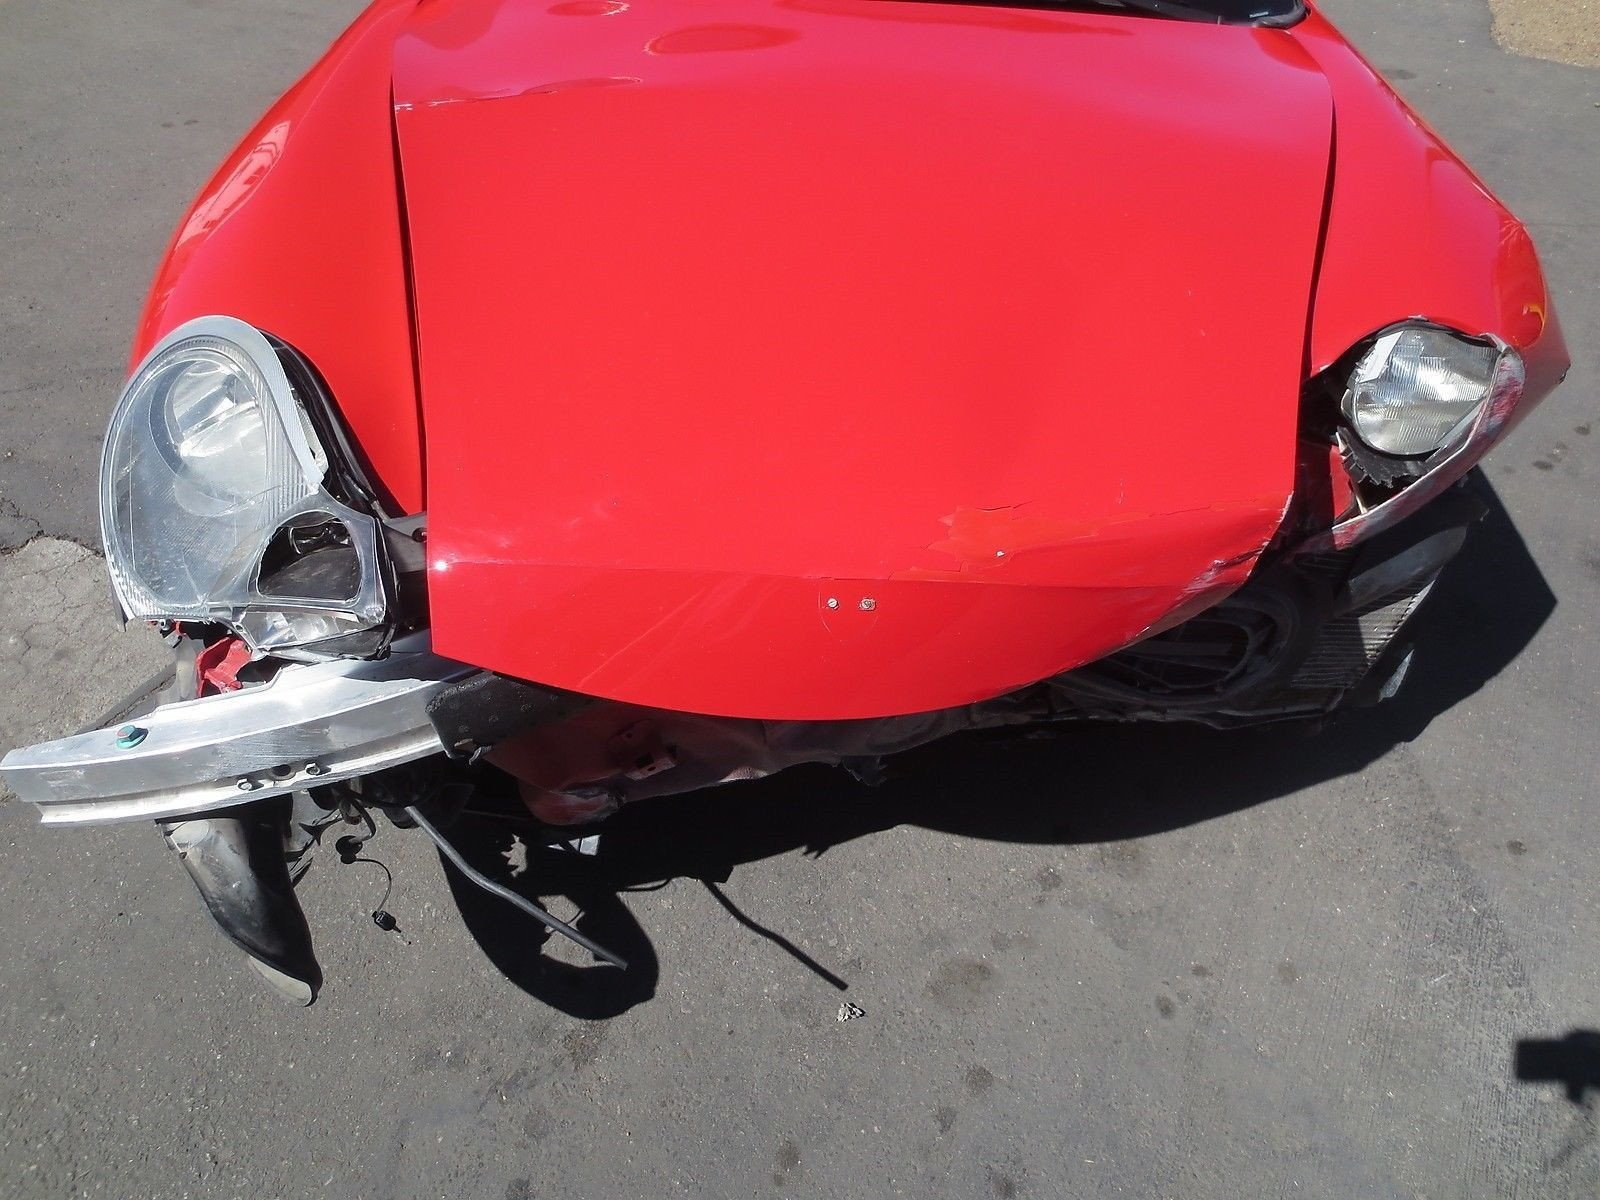 02 Porsche BOXSTER 986 Parting Out car parts 39,361